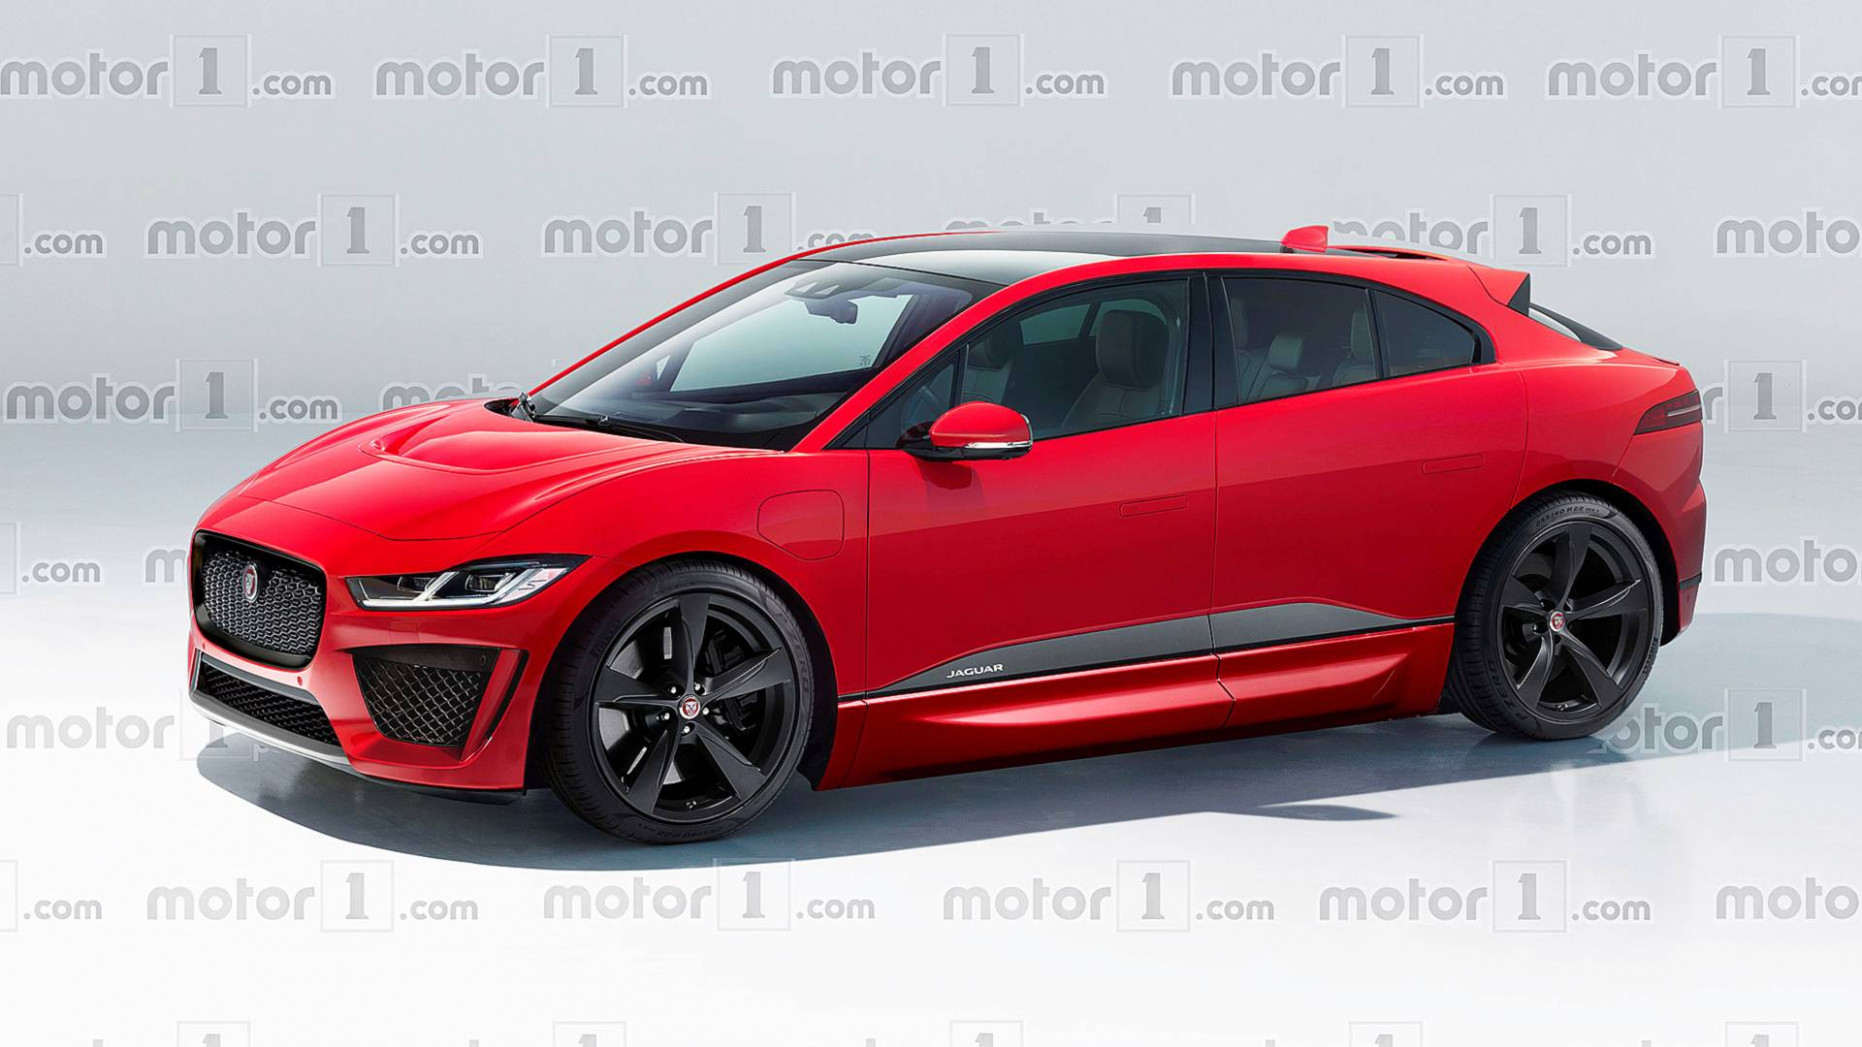 Jaguar I-Pace SVR Officially Confirmed As Hot Electric SUV